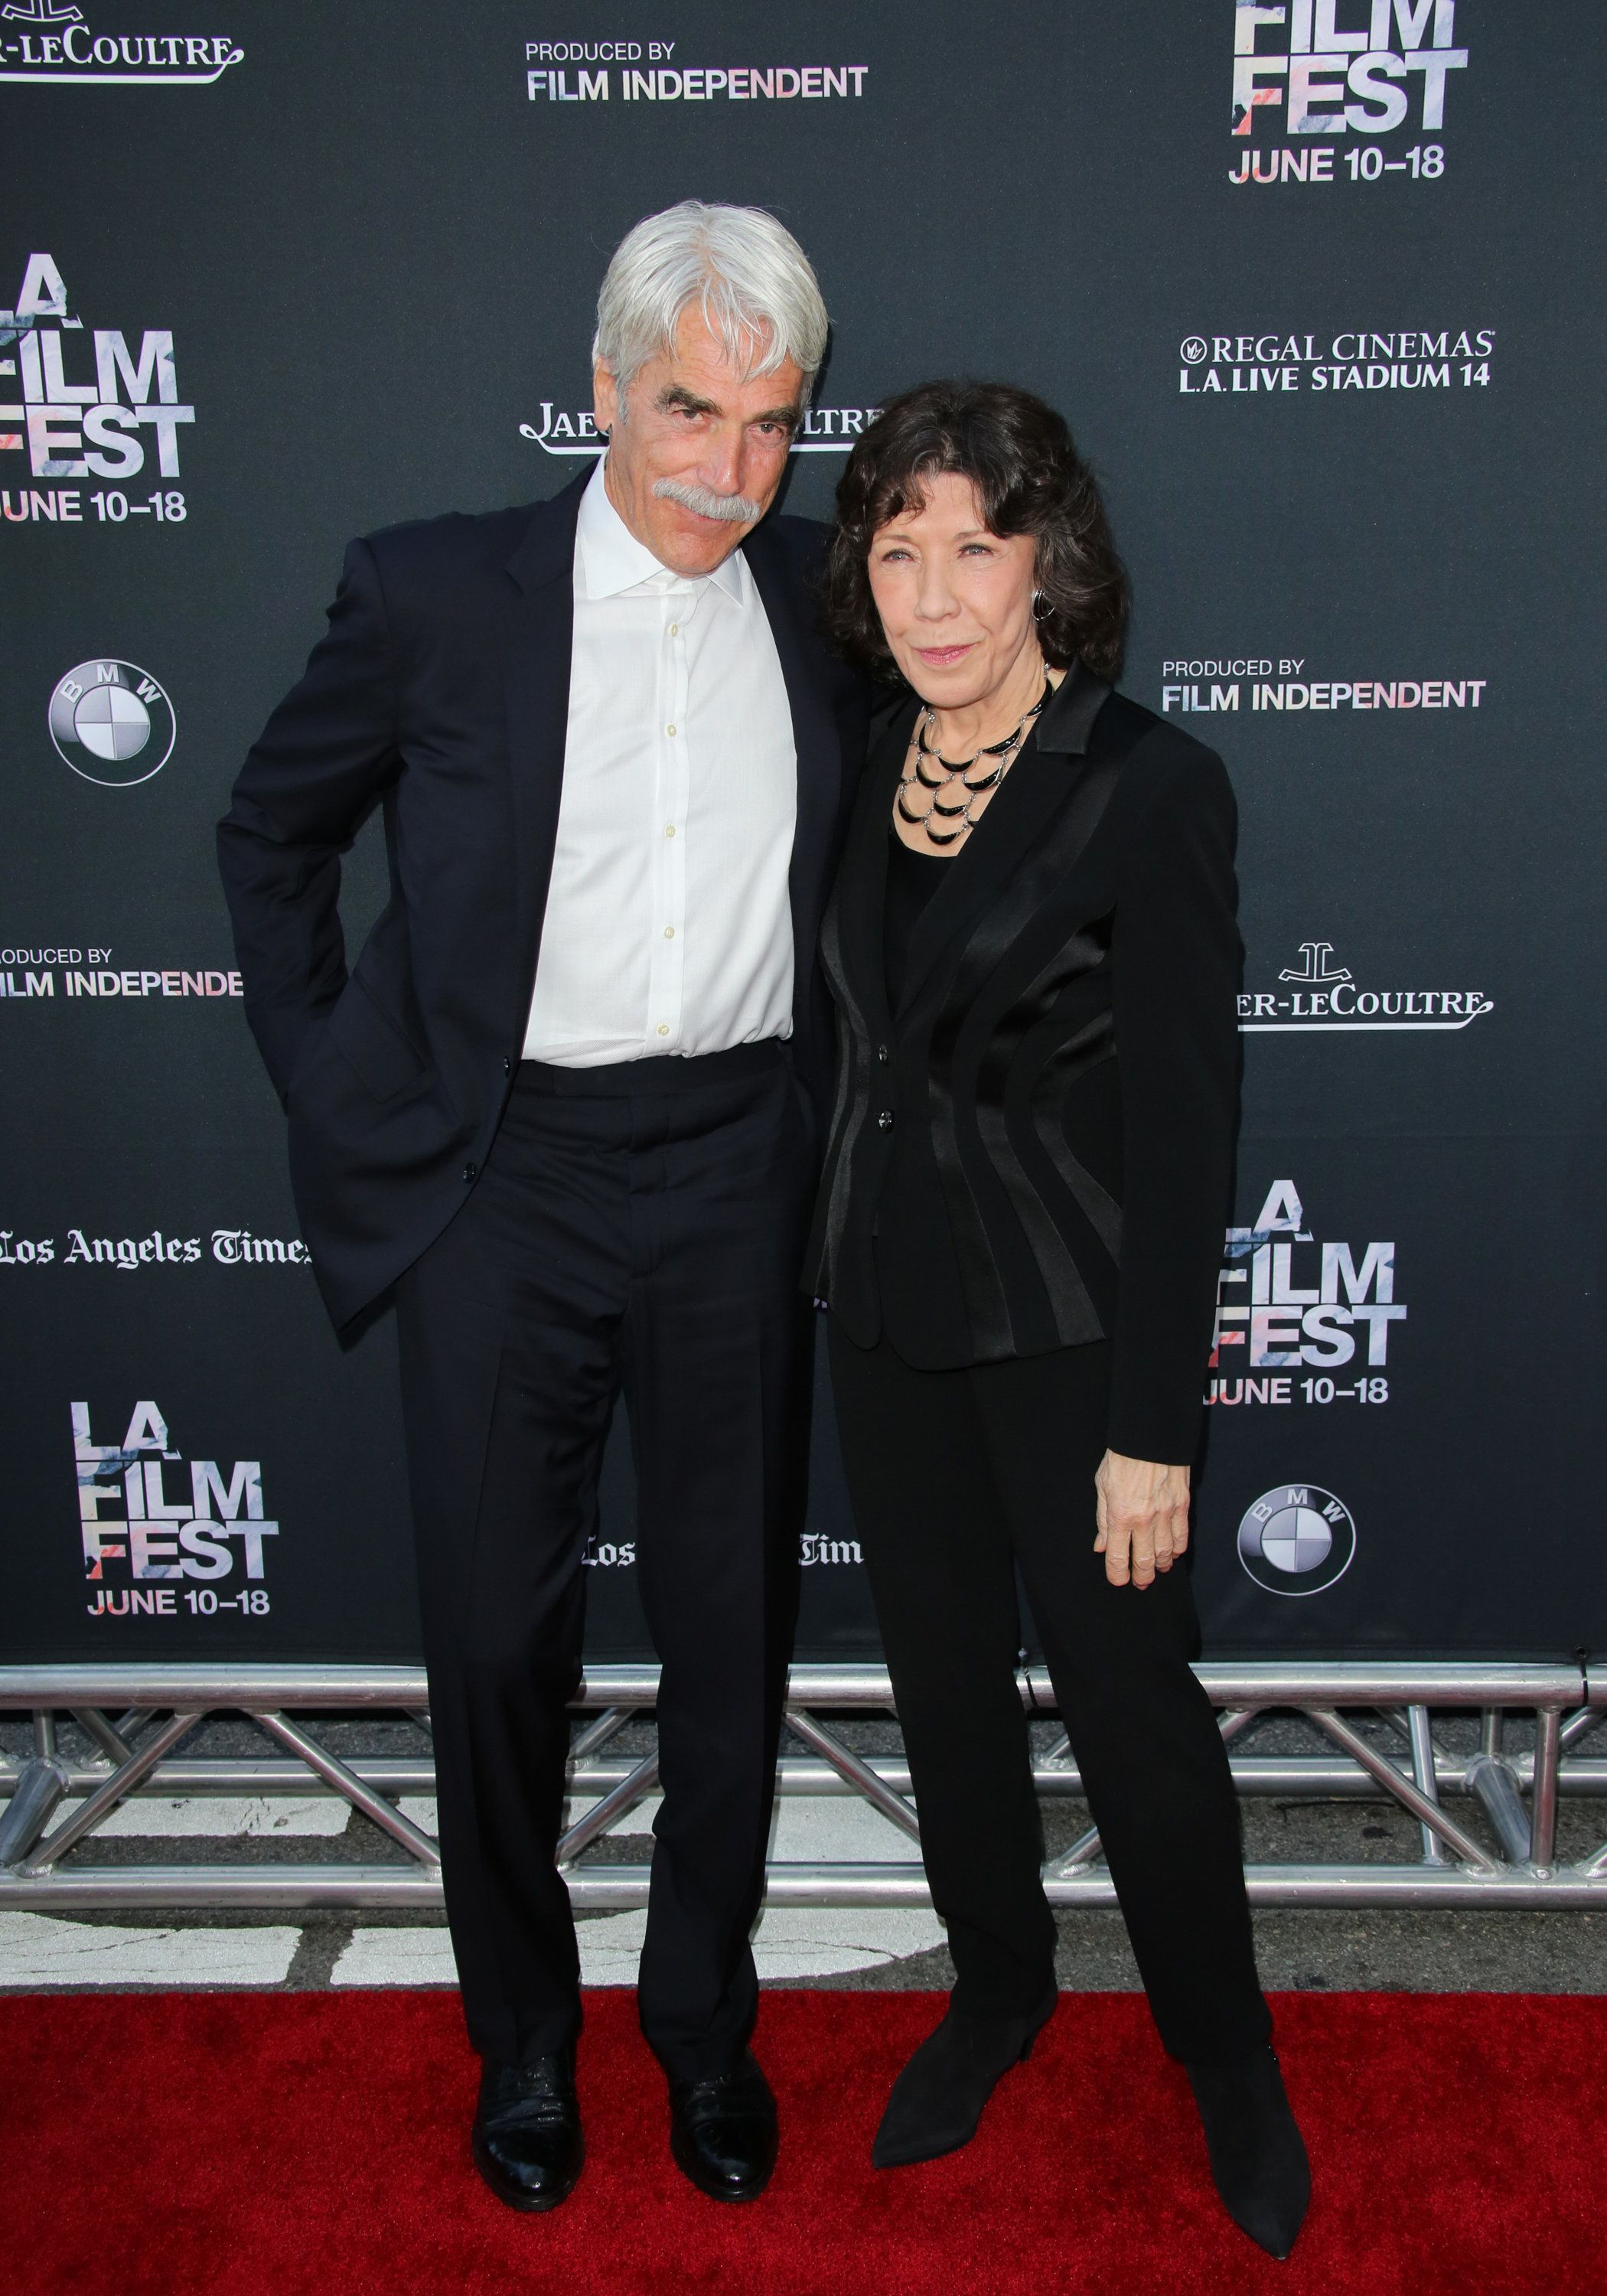 LOS ANGELES, CA - JUNE 10:  Actors Sam Elliott (L) and Lily Tomlin (R) attend the premiere of 'Grandma' at the Opening Night of the 2015 Los Angeles Film Festival at Regal Cinemas L.A. Live on June 10, 2015 in Los Angeles, California.  (Photo by Paul Archuleta/FilmMagic)